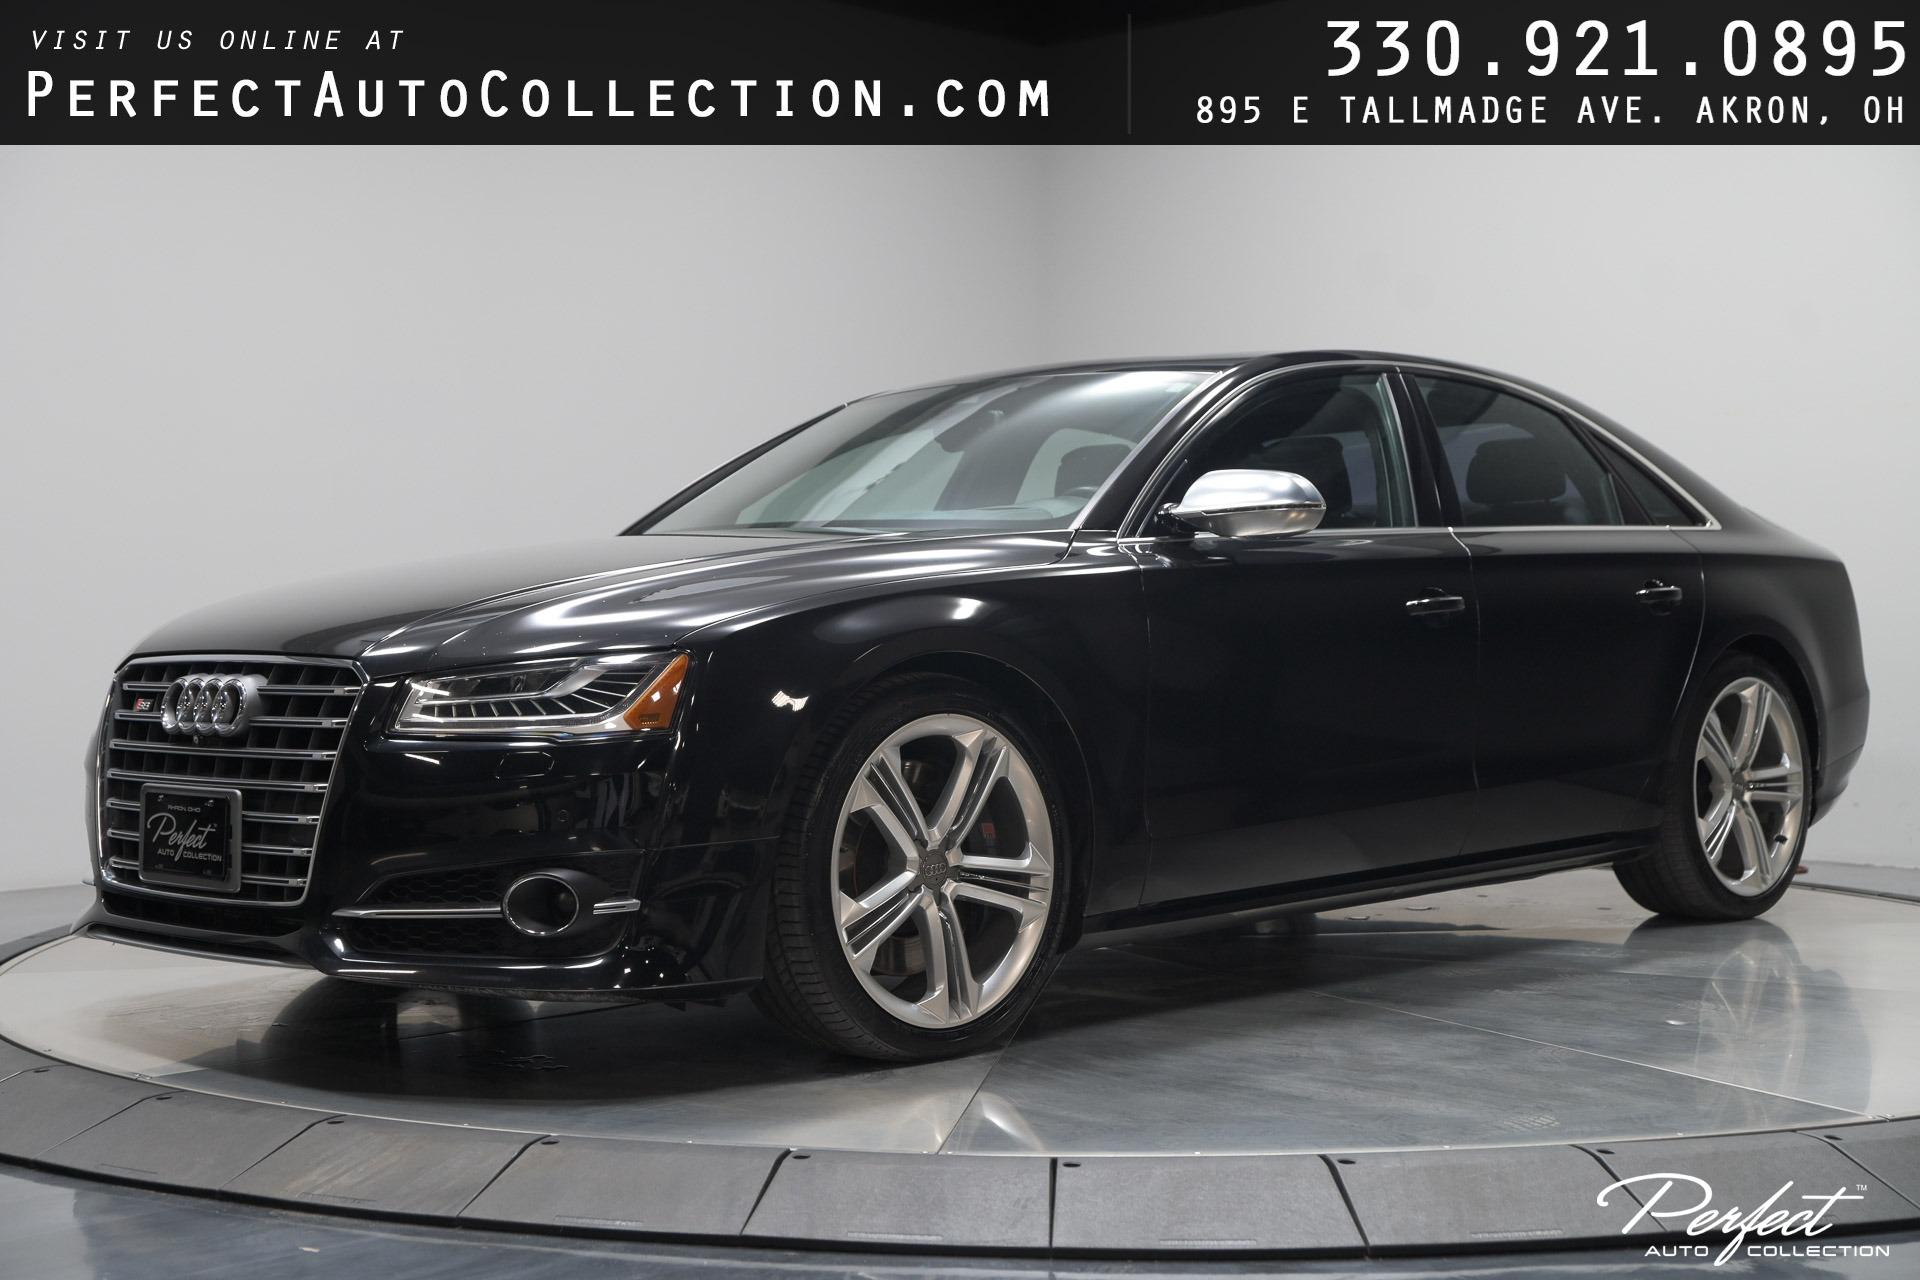 Used 2015 Audi S8 4.0T quattro for sale Sold at Perfect Auto Collection in Akron OH 44310 1